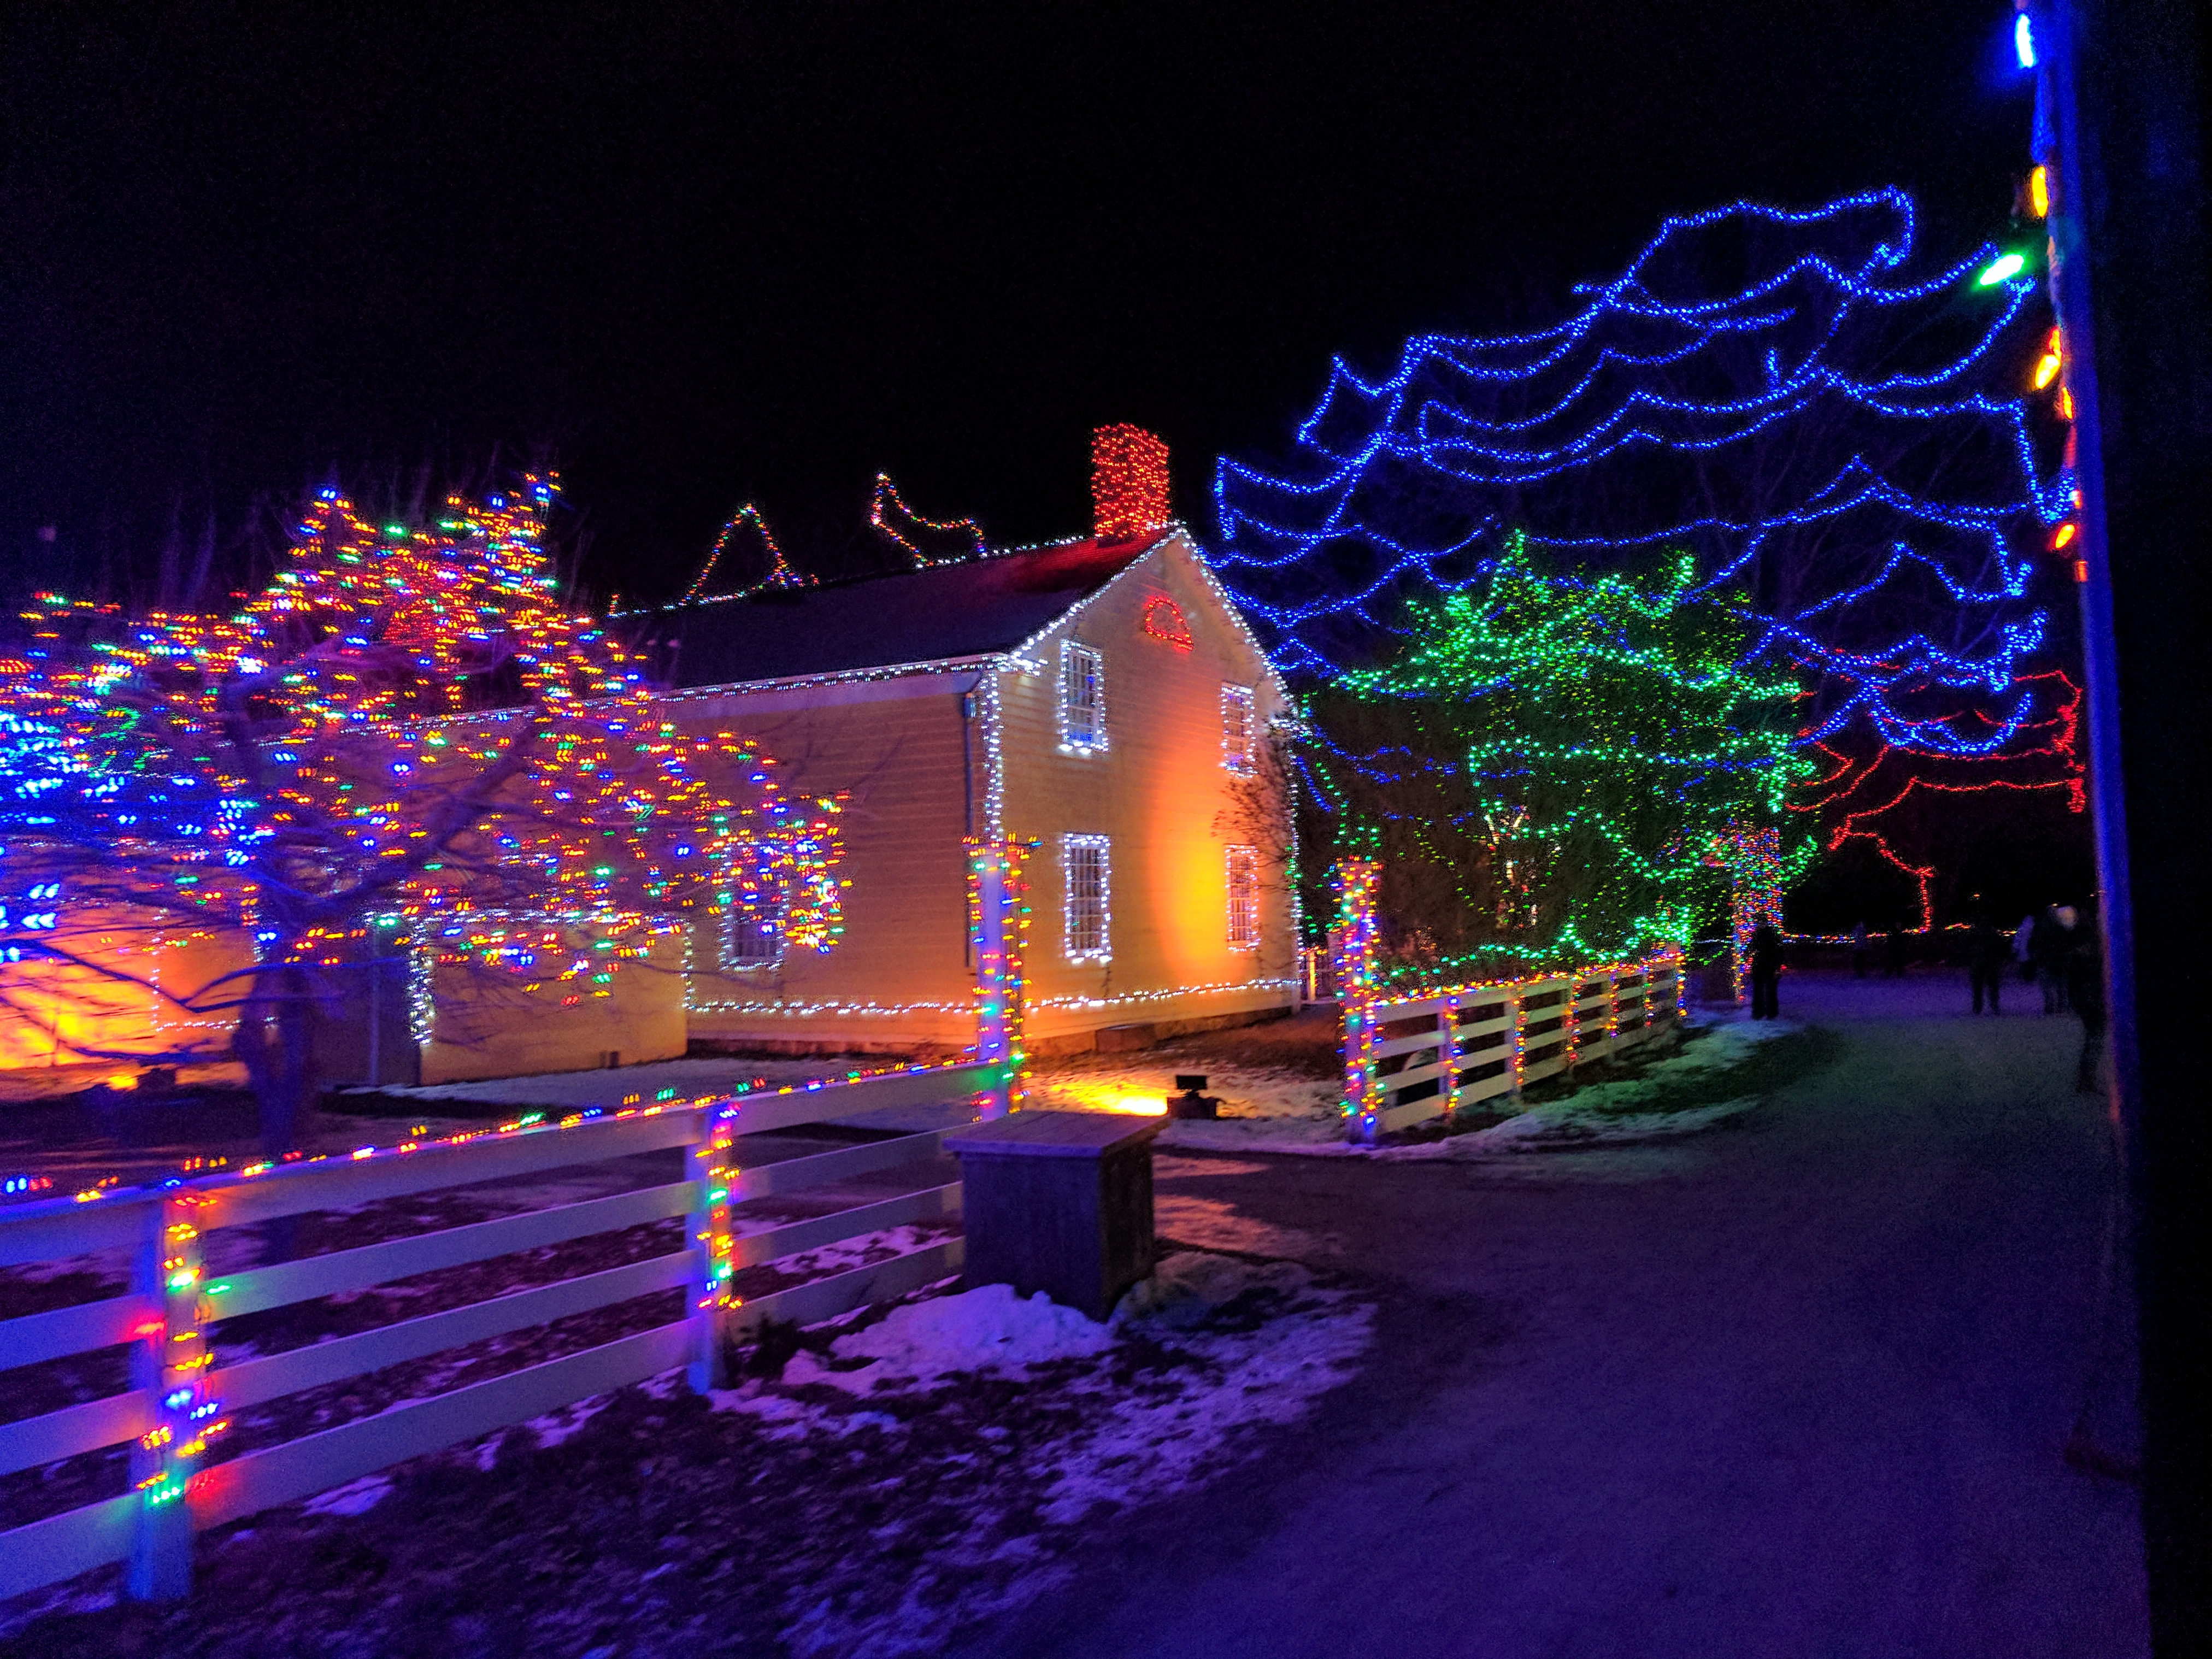 Night lights upper canada village - Upper Canada Village Is A Well Oiled Machine When It Comes To Celebrating The Holidays Their Halloween Event Pumpkinferno Is Spectacular And Similarly